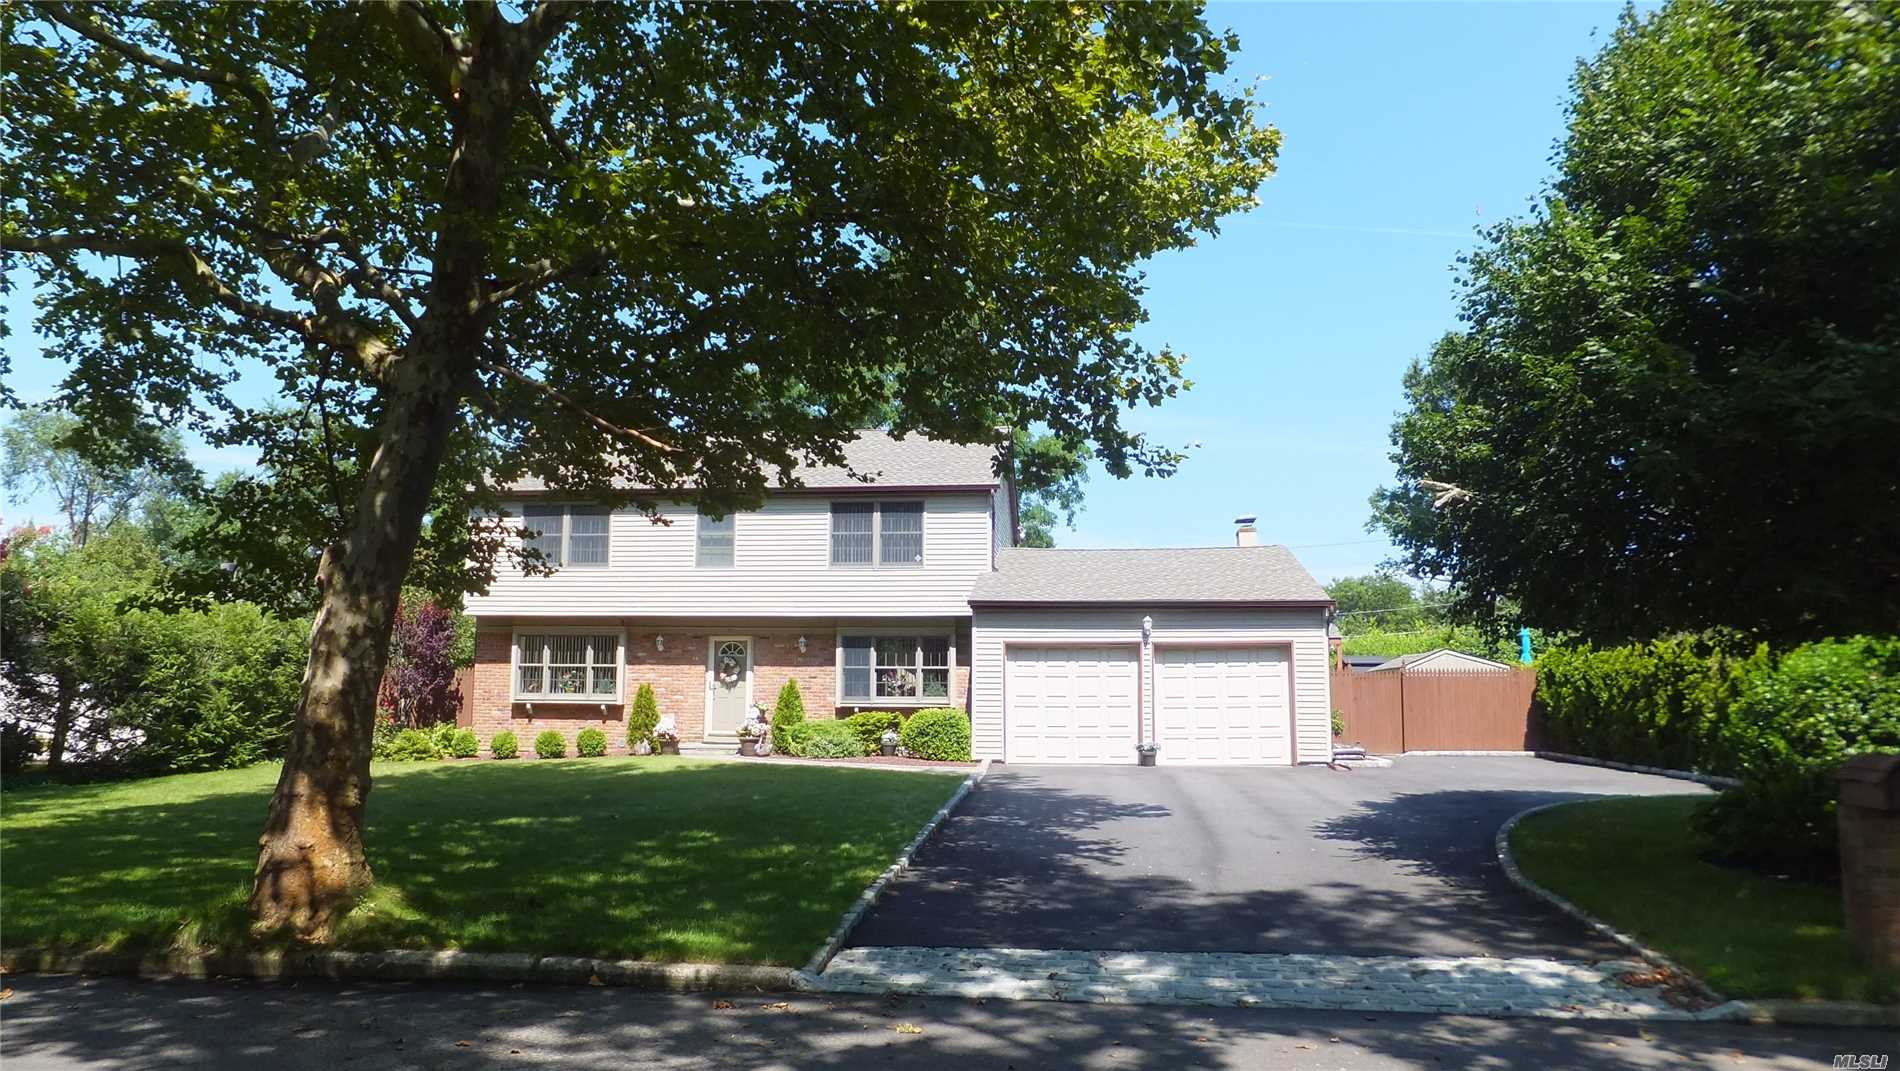 Expanded 20' X 24' Vaulted Great Rm. W/ Hardwood Floors 4 Skylights And Custom Coat Closet- Updated Open Kitchen Floor Plan W/ Ceramic Title - Built In Desk In Kitchen W/ Cabinets;  Expanded Master Bedrm W/ Updated Bth. - Finished Heated Basement W/ Ose - New Roof & Gutters- New Driveway; New Heating System- New Electrical Panel - 5 Zone Sprinkler System; Park Like, Private Backyard.